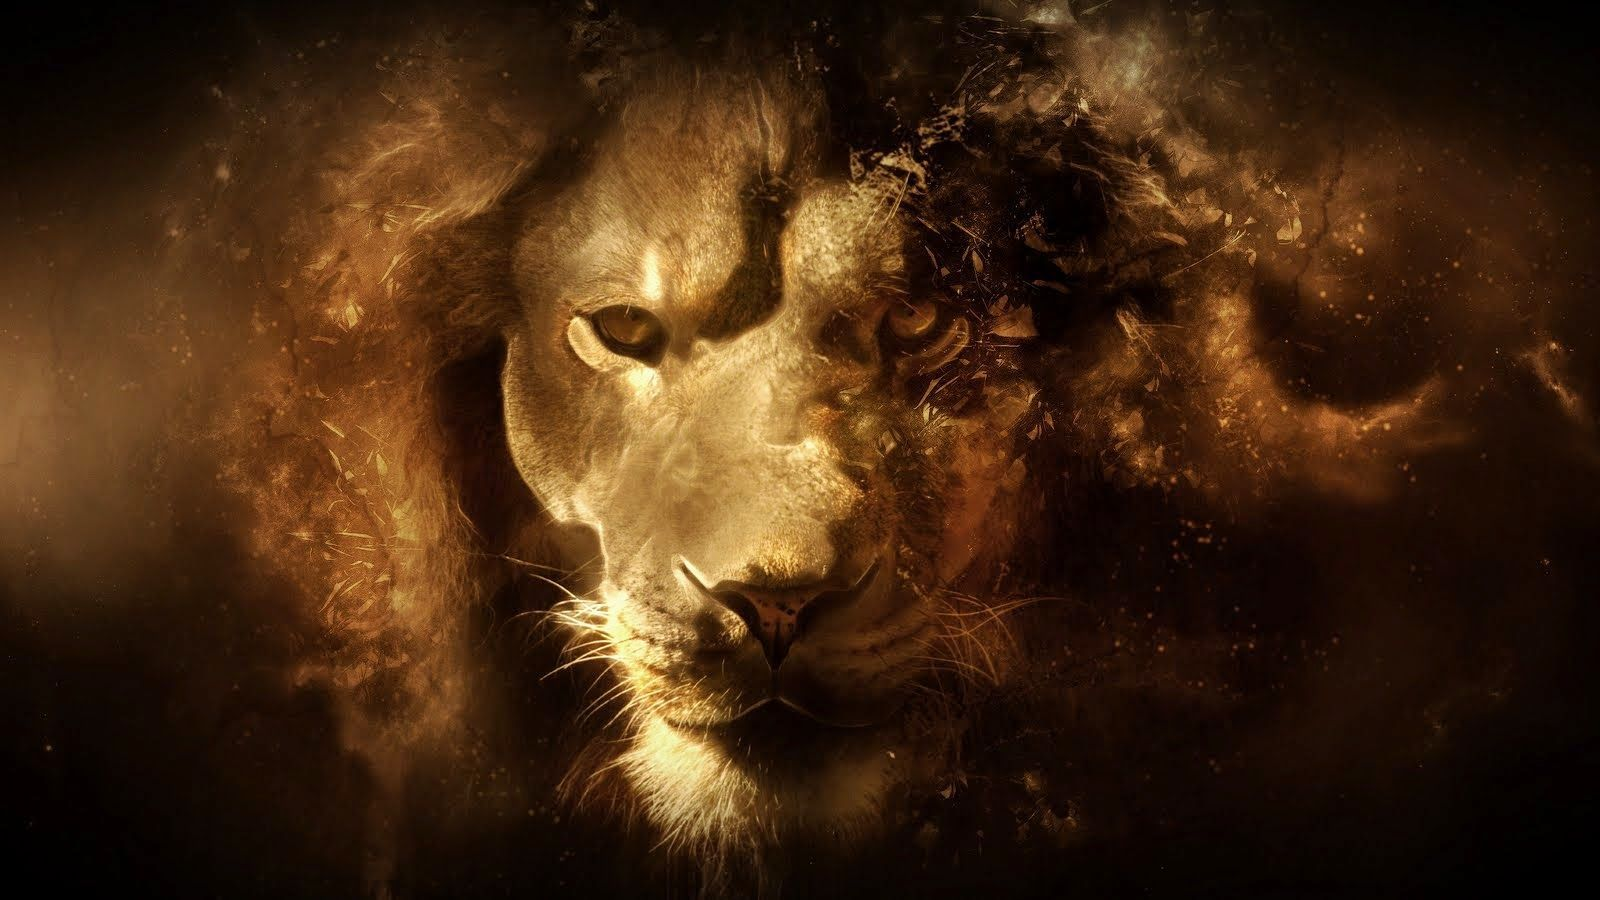 Narnia Aslan Wallpaper | HD Wallpapers | Pinterest | Hd wallpaper ... for Narnia Aslan Wallpaper  557yll